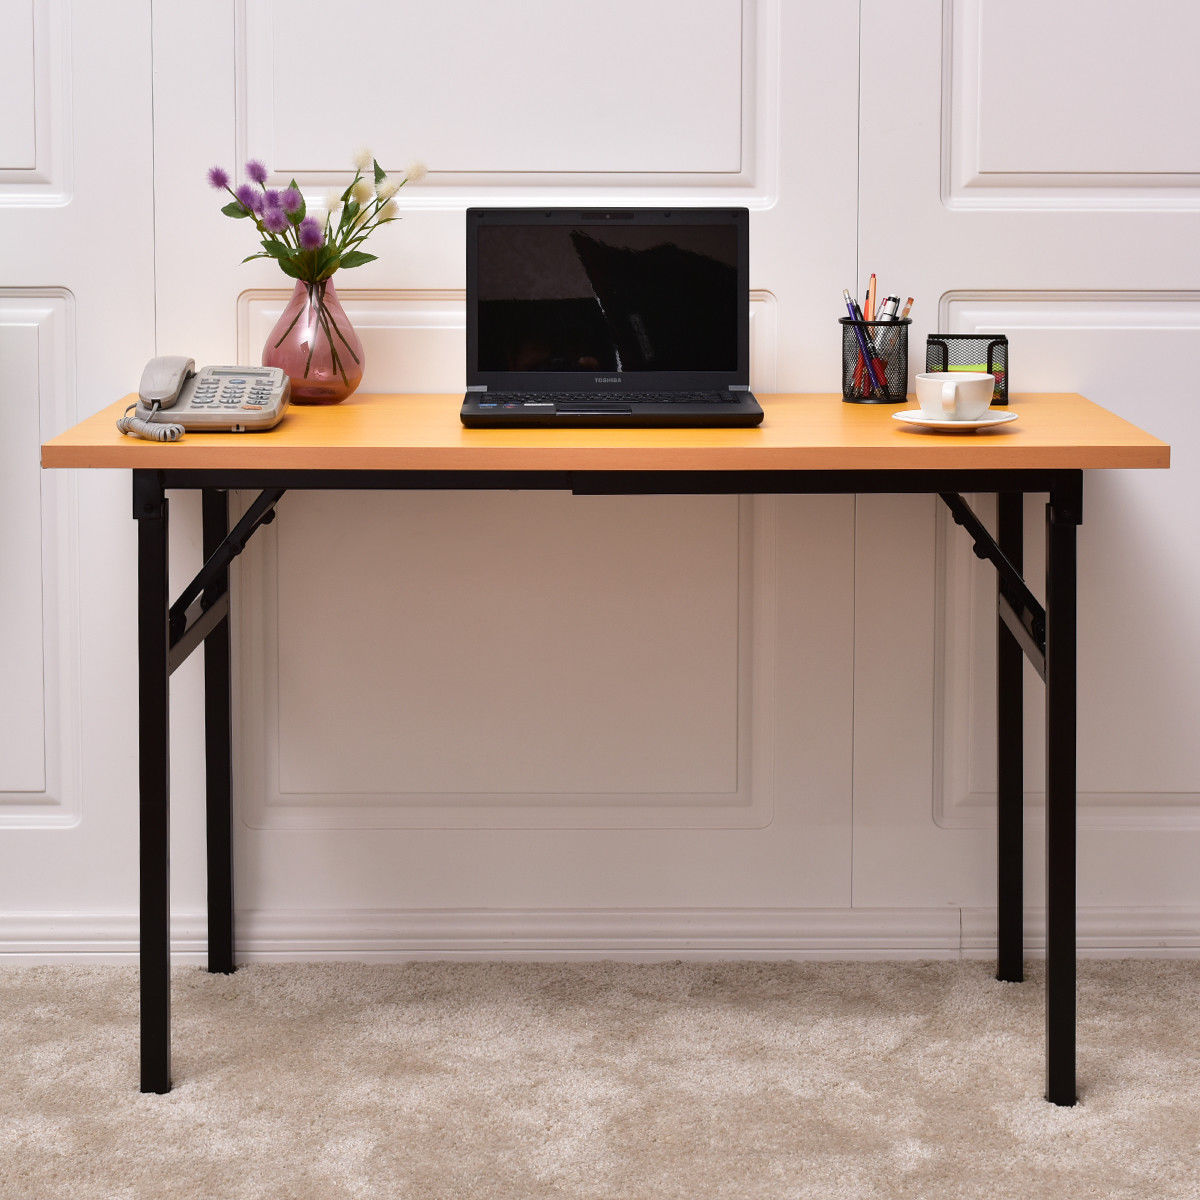 Giantex Portable Folding Computer Desk PC Laptop Table Modern Wood Writing Workstation Home Office Furniture HW56138 giantex height adjustable standing desk converter sit stand computer laptop workstation modern wood furniture hw57064